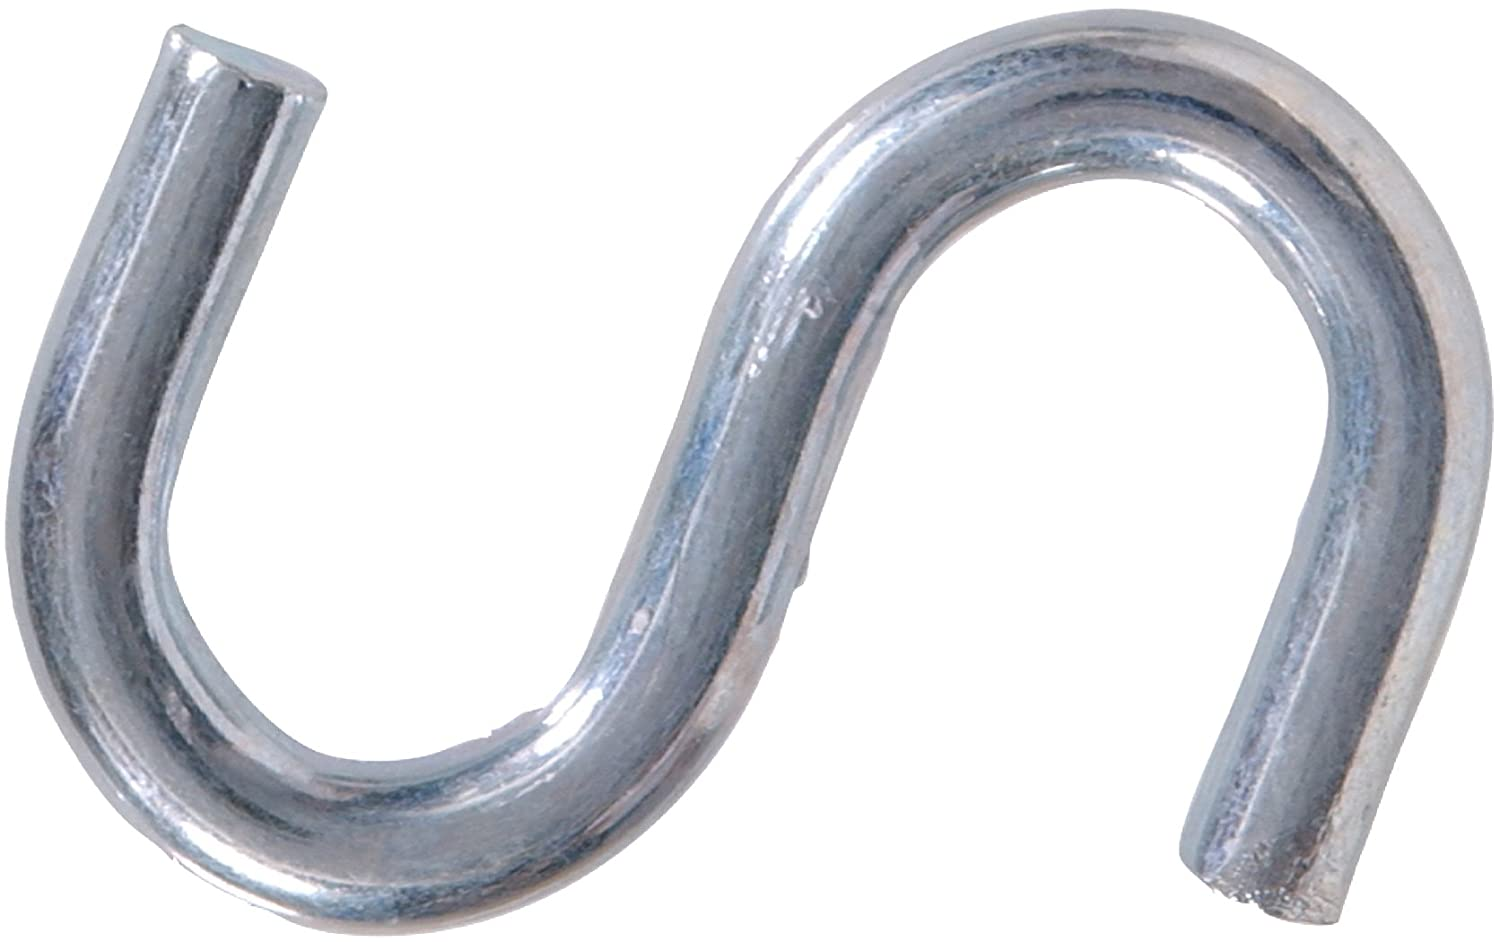 Hillman Hardware Essentials S Hook 1 1 2 Zinc Finish 20 Pack